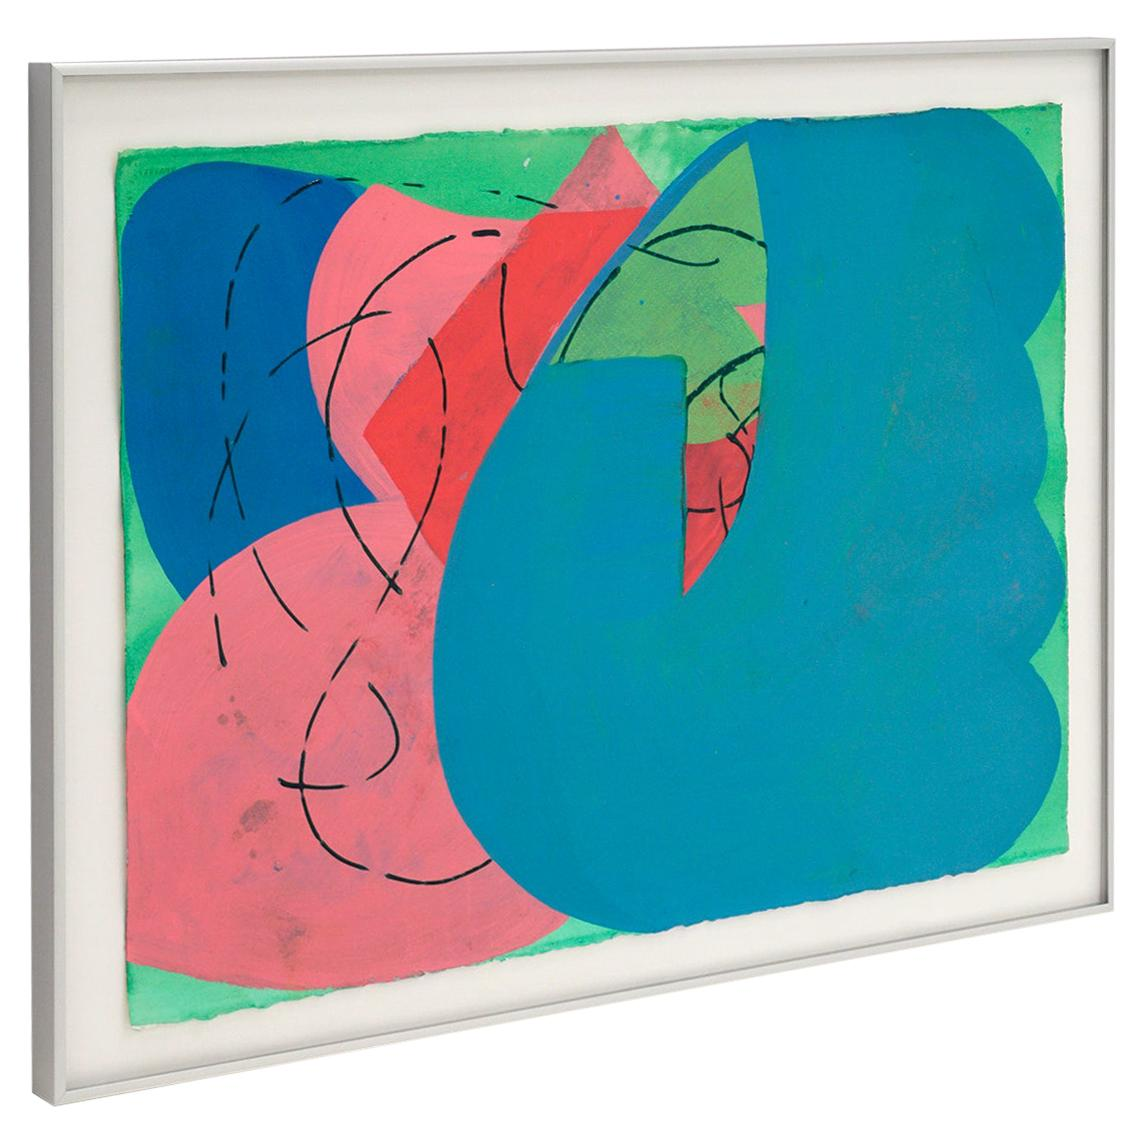 Lester Goldman Abstract Watercolor Painting, Blue, Pink, Green, and Red, Signed